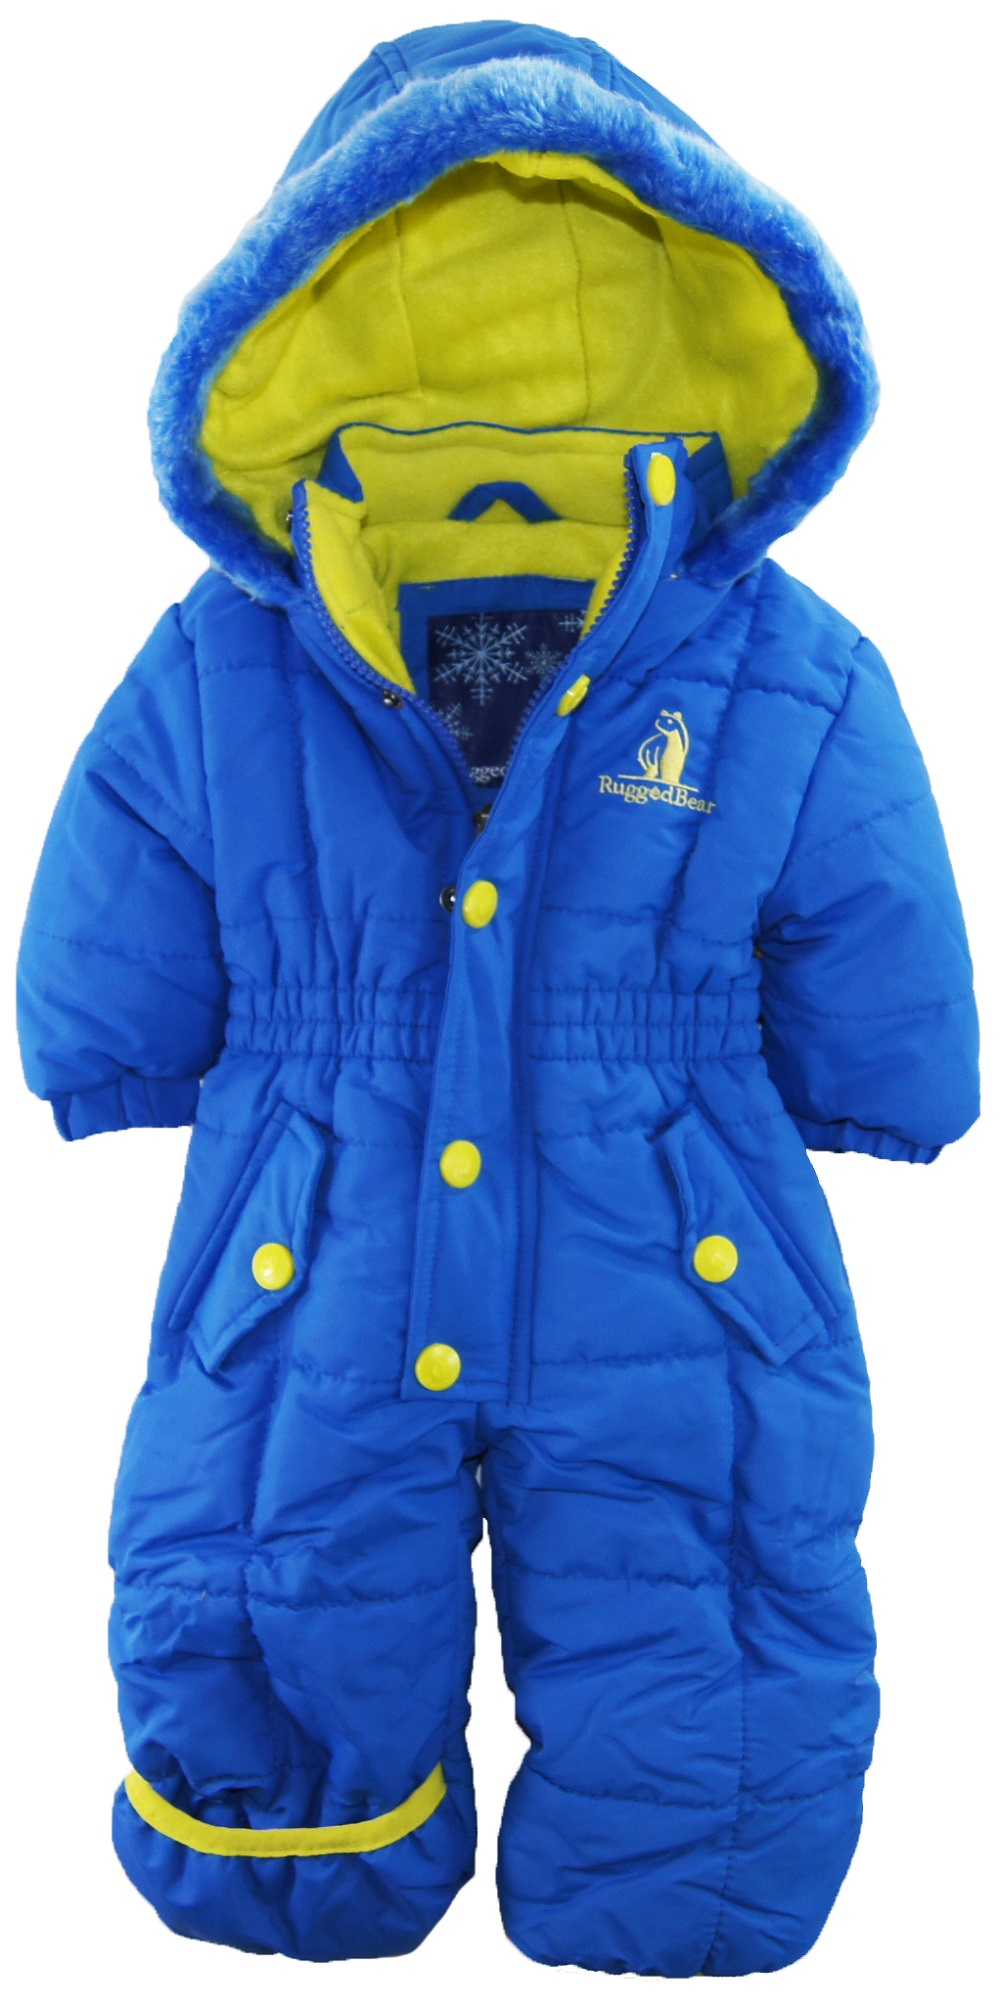 Rugged Bear Baby & Toddler Jackets & Outerwear. Rugged Bear. Rugged Bear Baby & Toddler Jackets & Outerwear. Showing 23 of 23 results that match your query. Rugged Bear Baby Boys' Robot Snowsuit and Coat Ski Snowboarding. Product - Rugged Bear Baby Boys' Solid Patch Pocket Snowsuit.